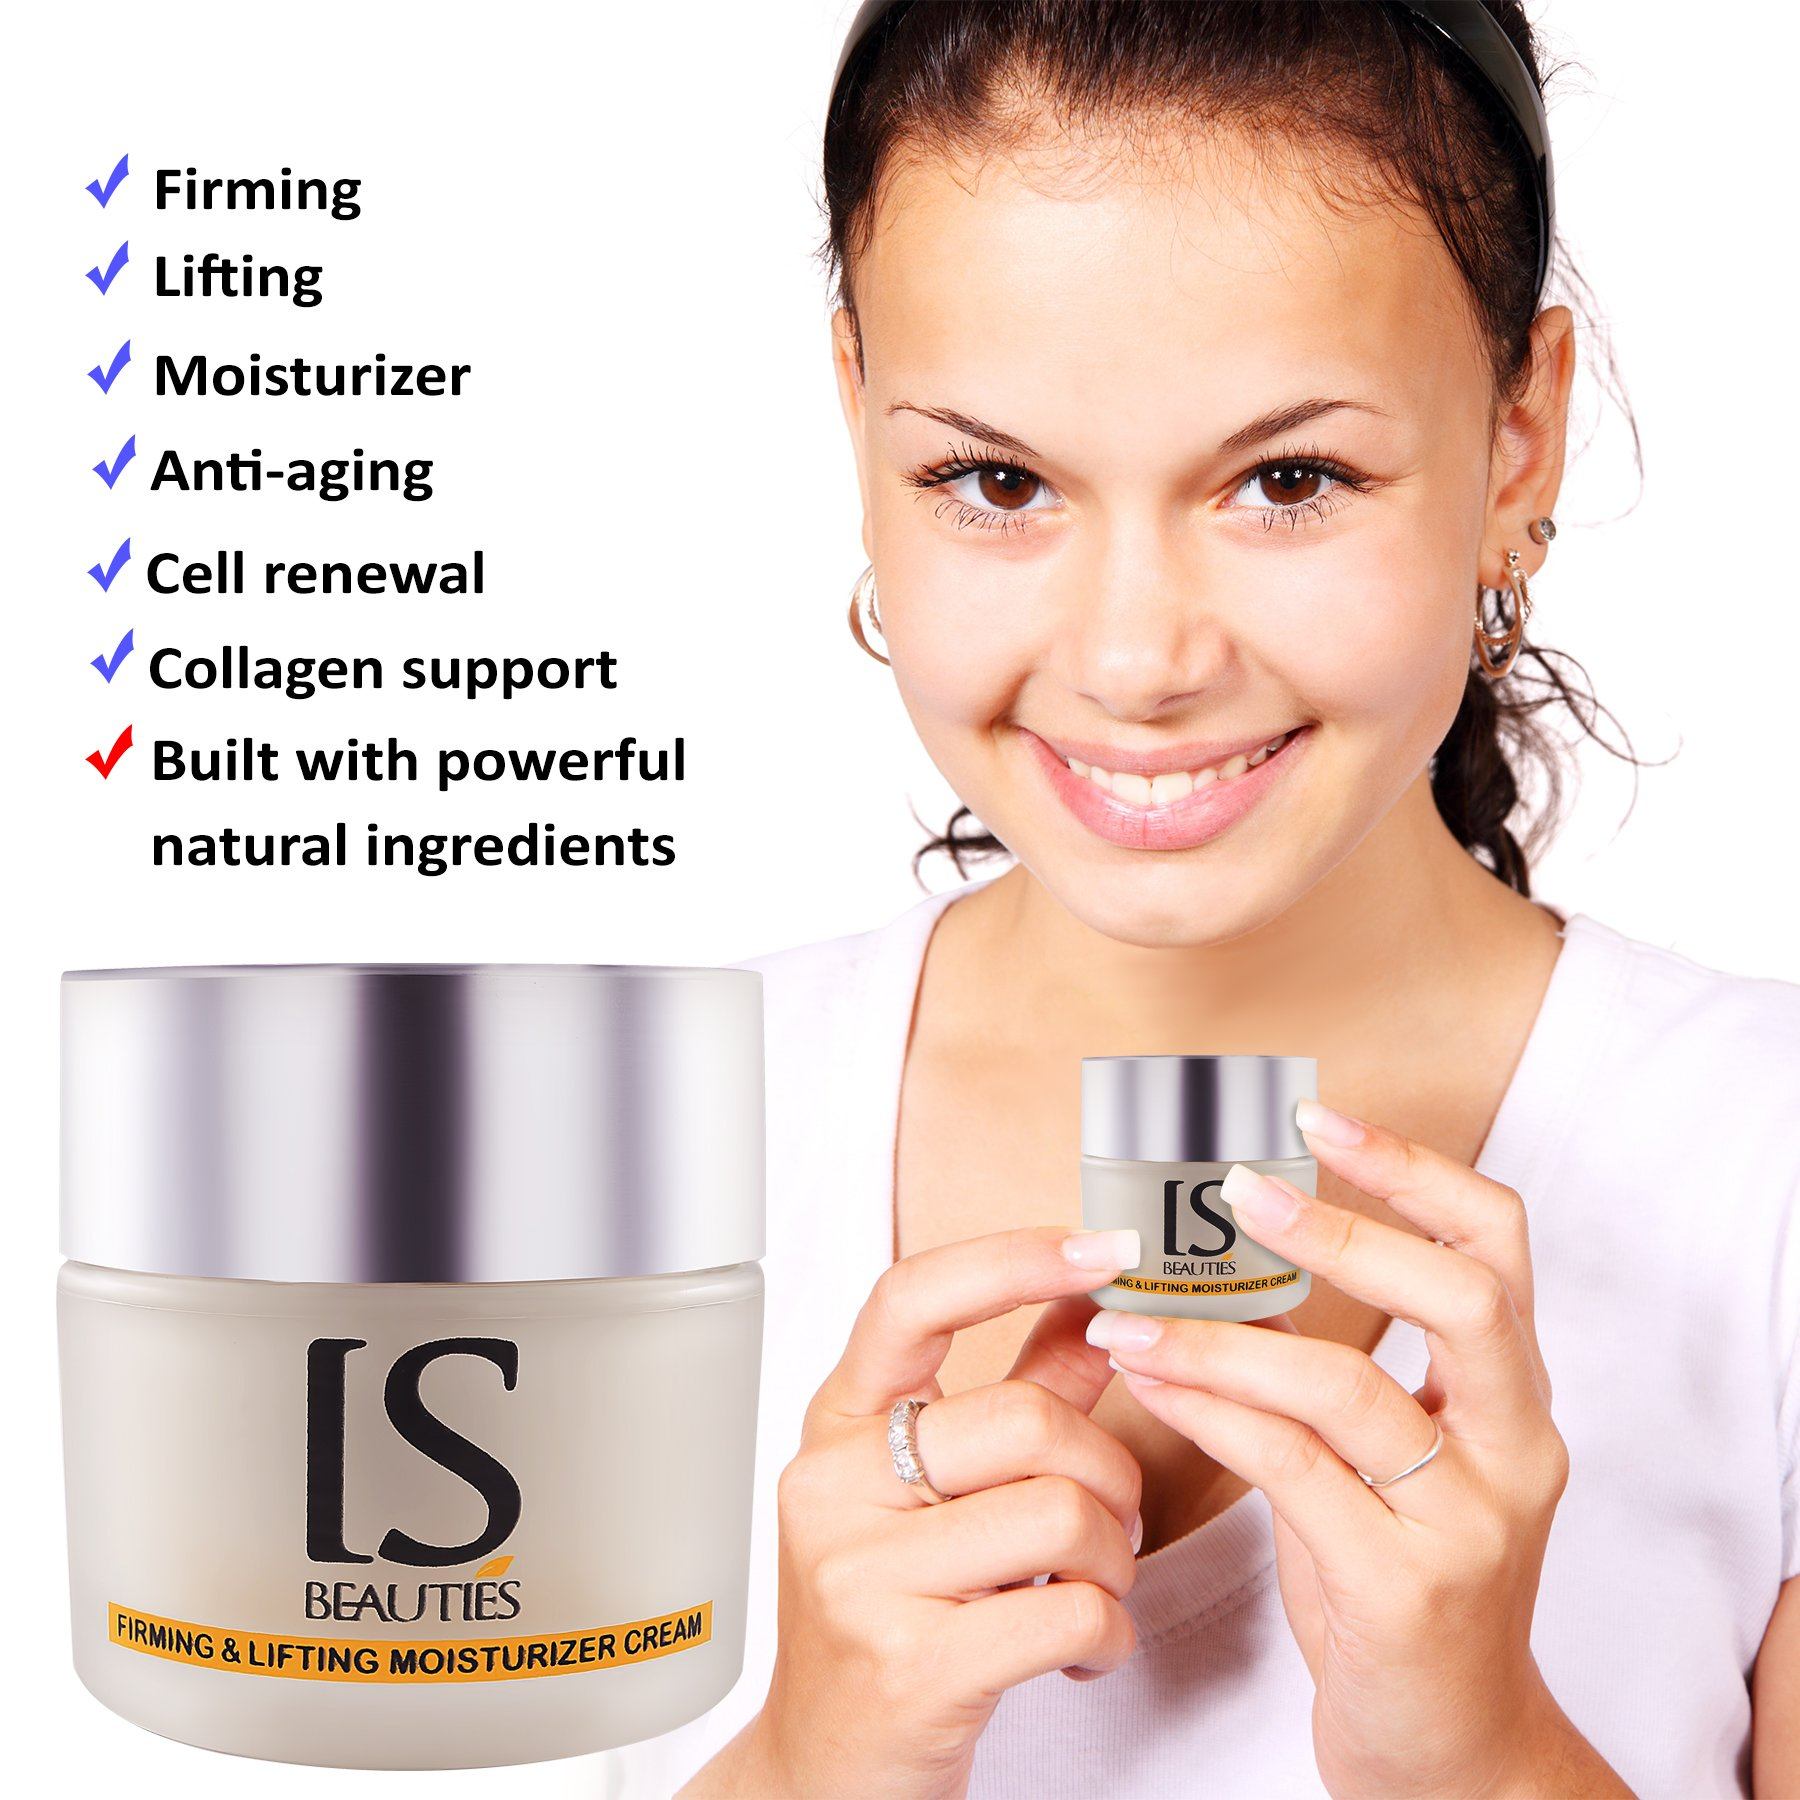 IS Beauties Anti Aging Cream - Skin Firming and Lifting Plus Moisturizer and Cell Renewal With Collagen Support For Face and Neck - Deep Moisturizing With Extra Lift and Firm For Women and Men